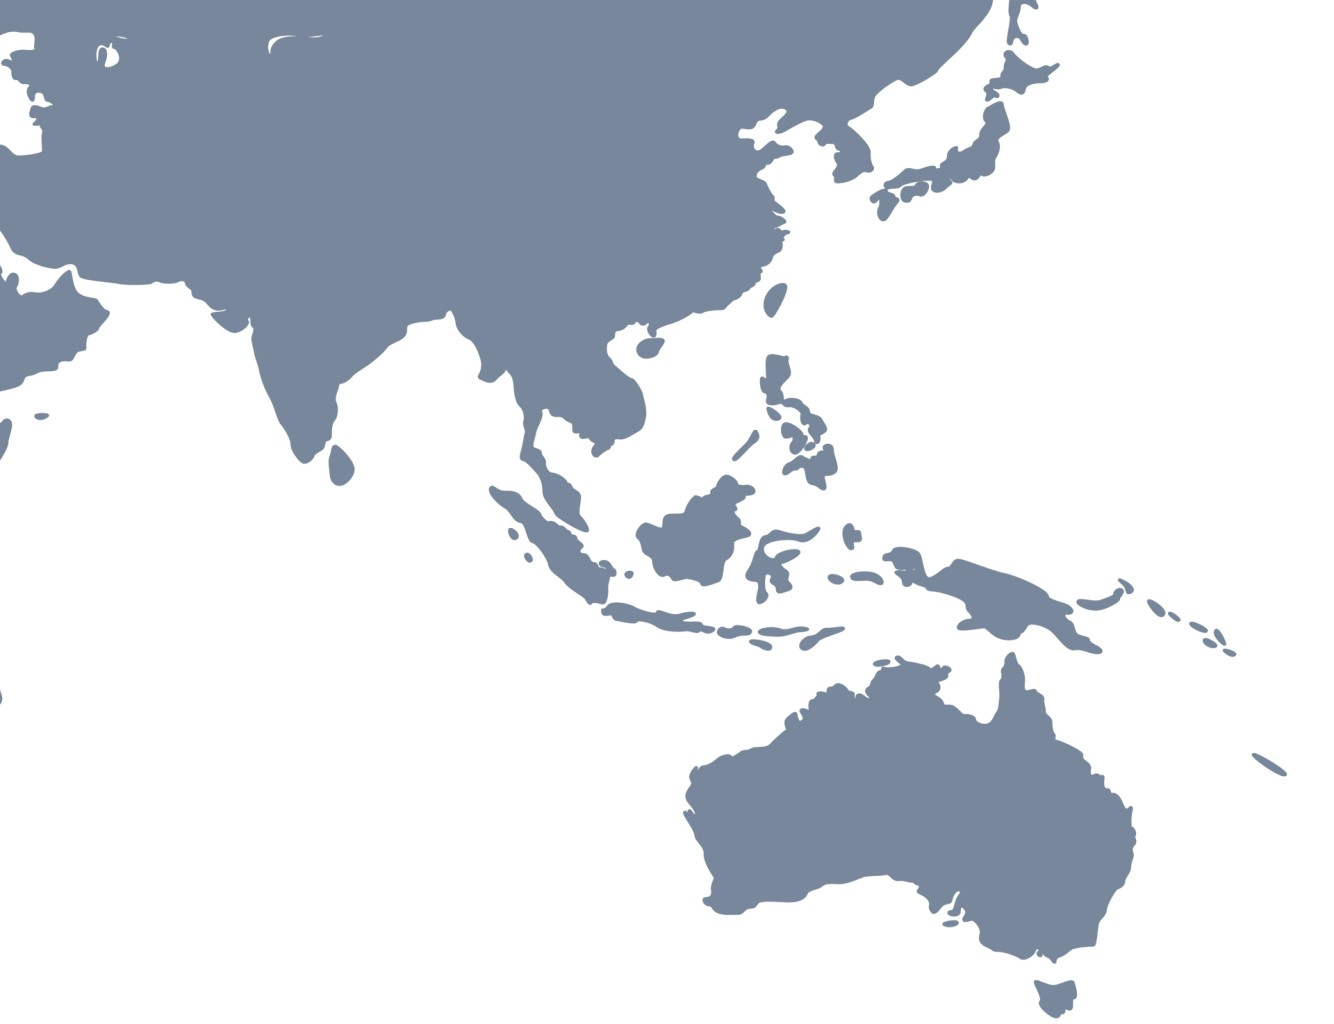 Asia Pacific